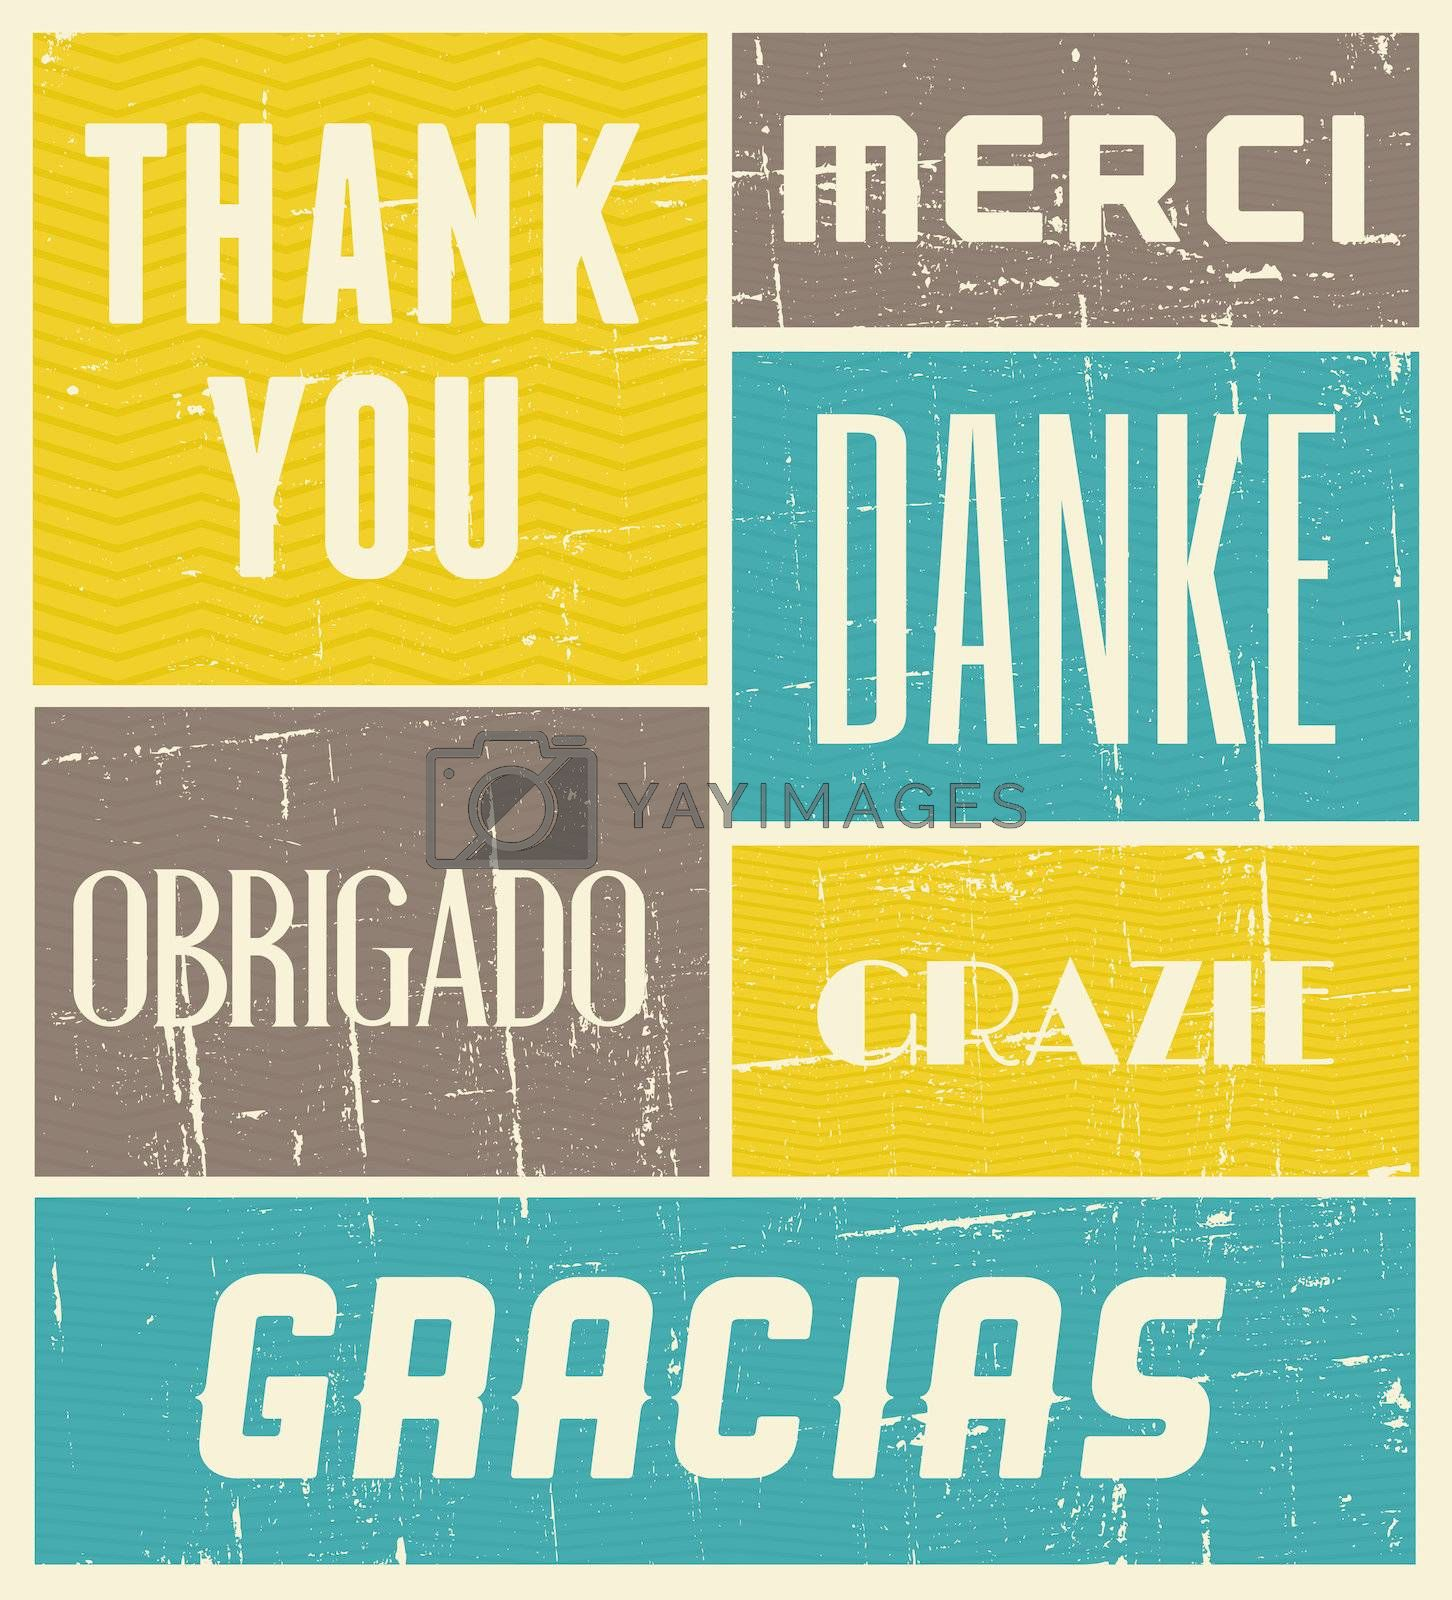 Vintage style poster with the words 'Thank You' in different languages.